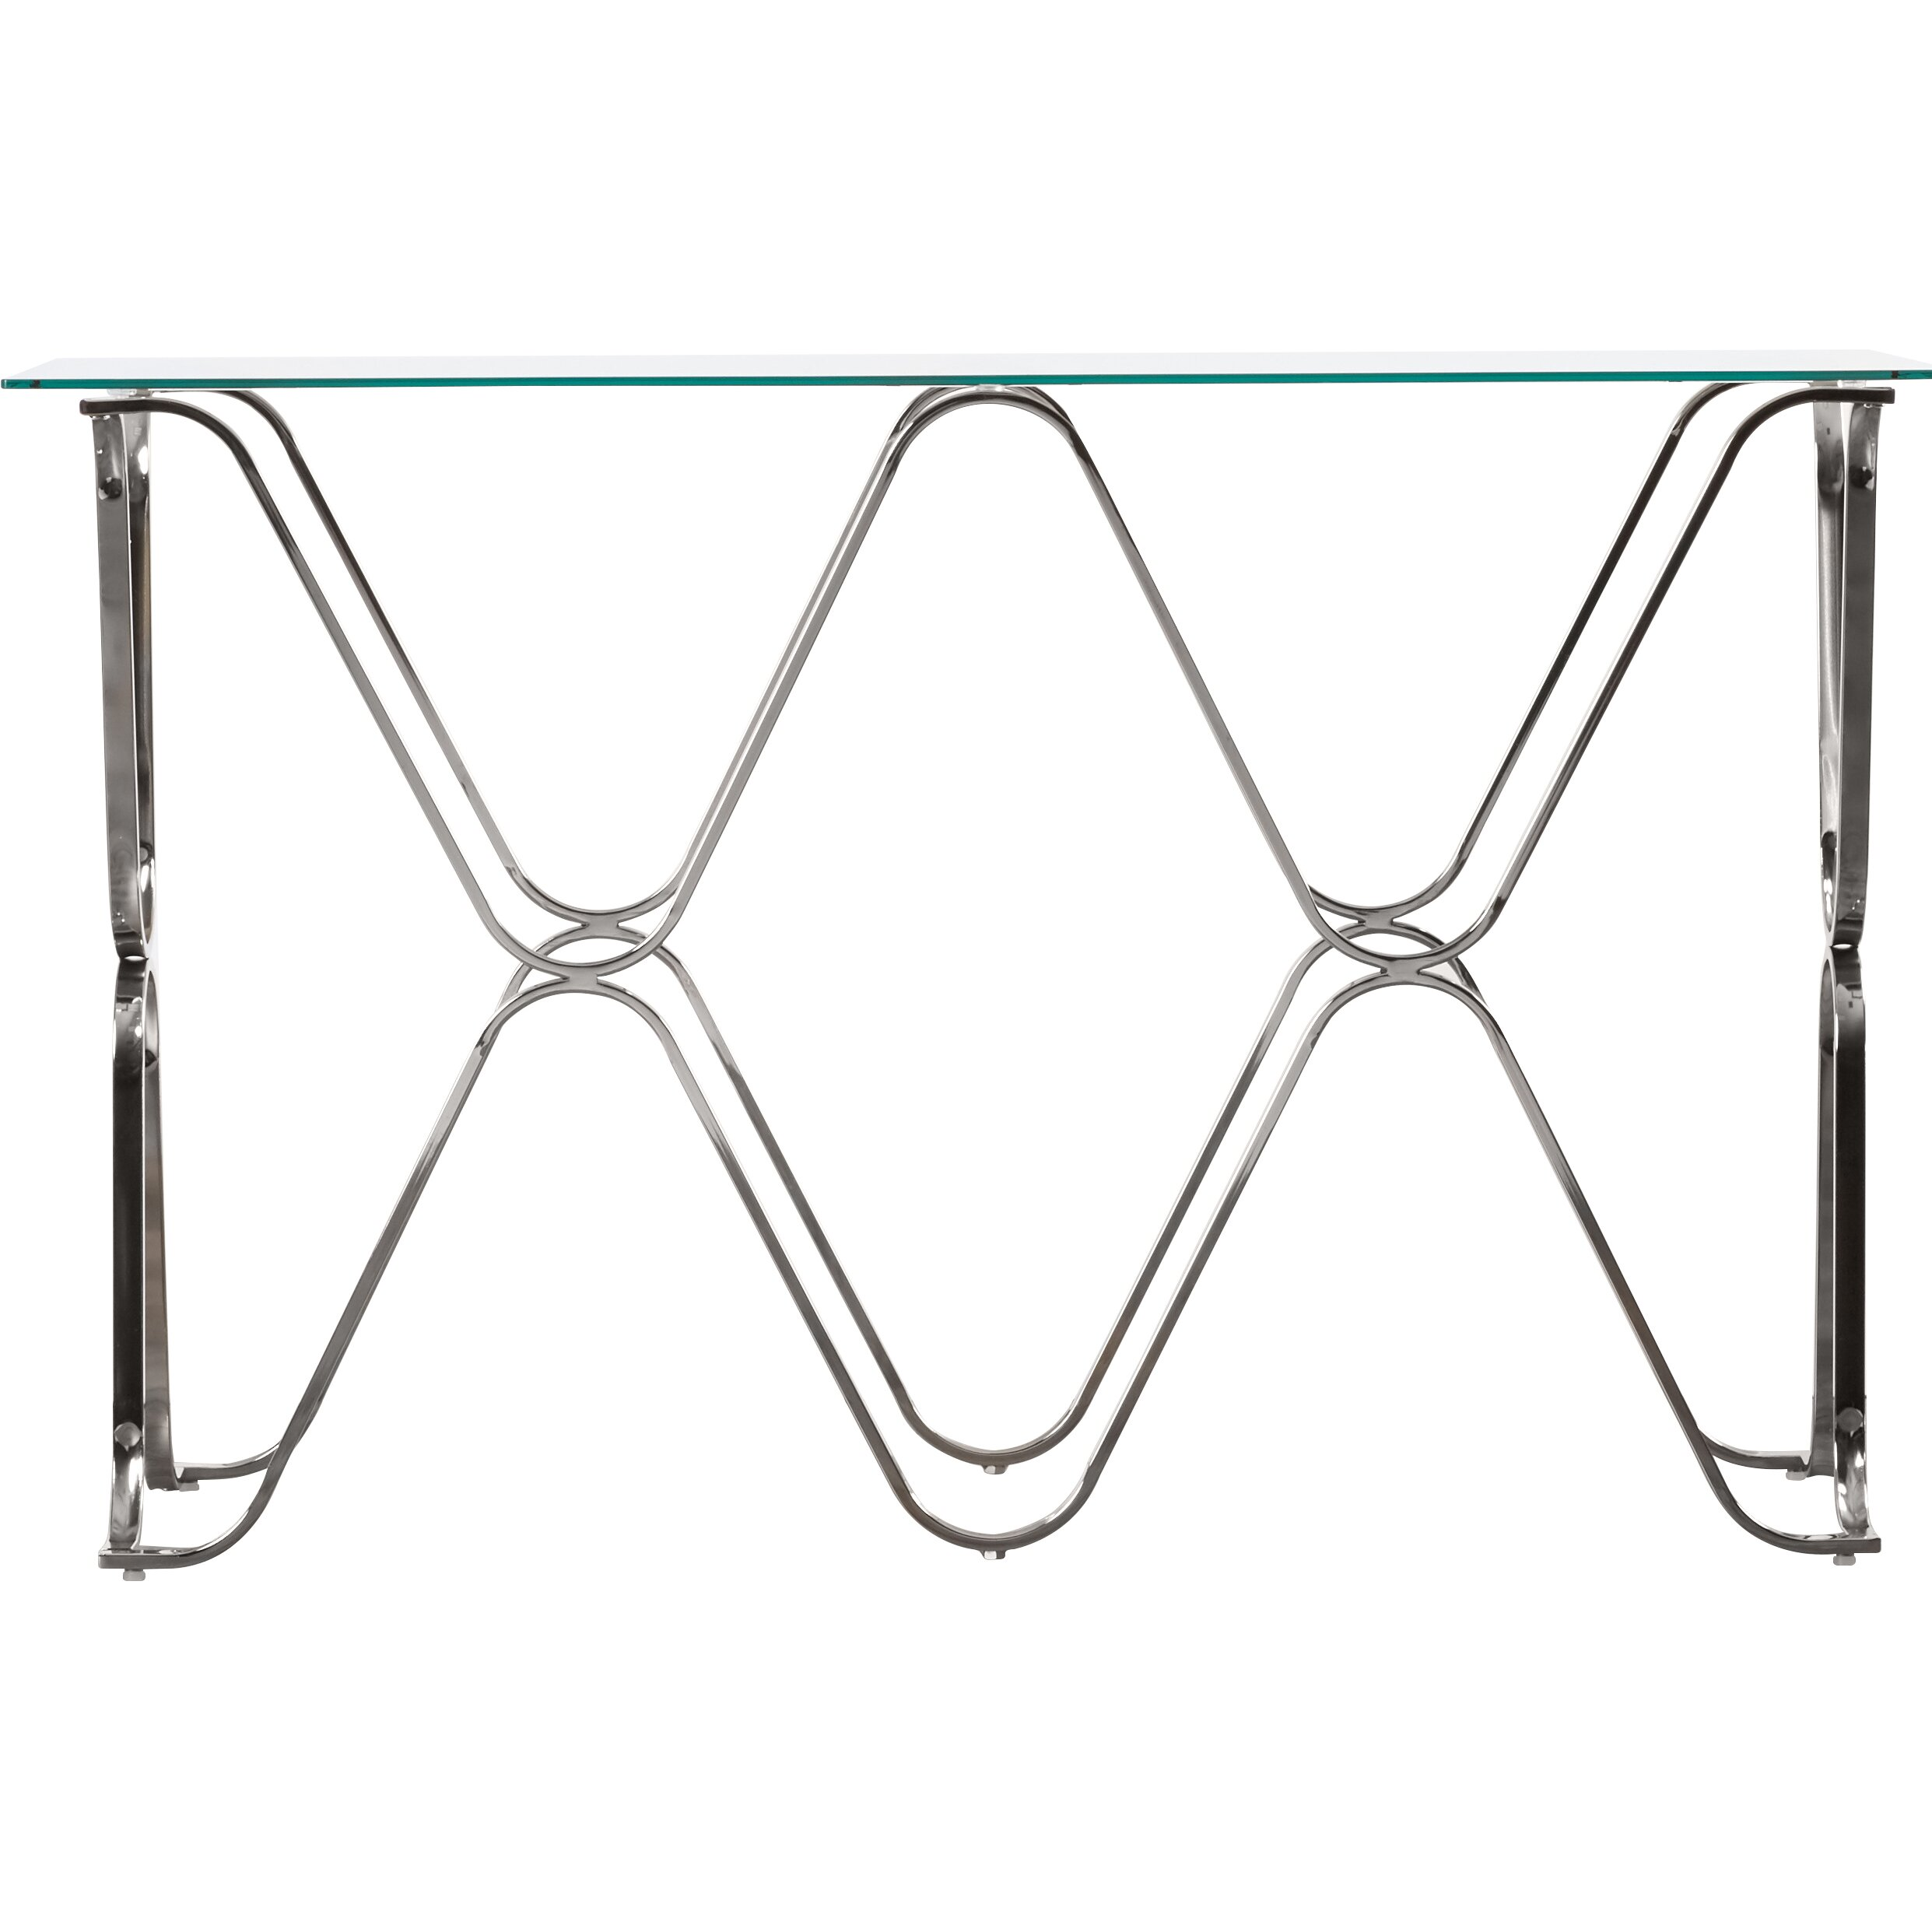 Fantazia Sofa Bed besides Car Seat Belt Harness For Special Needs also Ultimo Single Wardrobe besides Liseret Jante Moto also Wholesale Interiors Baxton Studio Julian Console Table WHI7879. on sofa beds sale